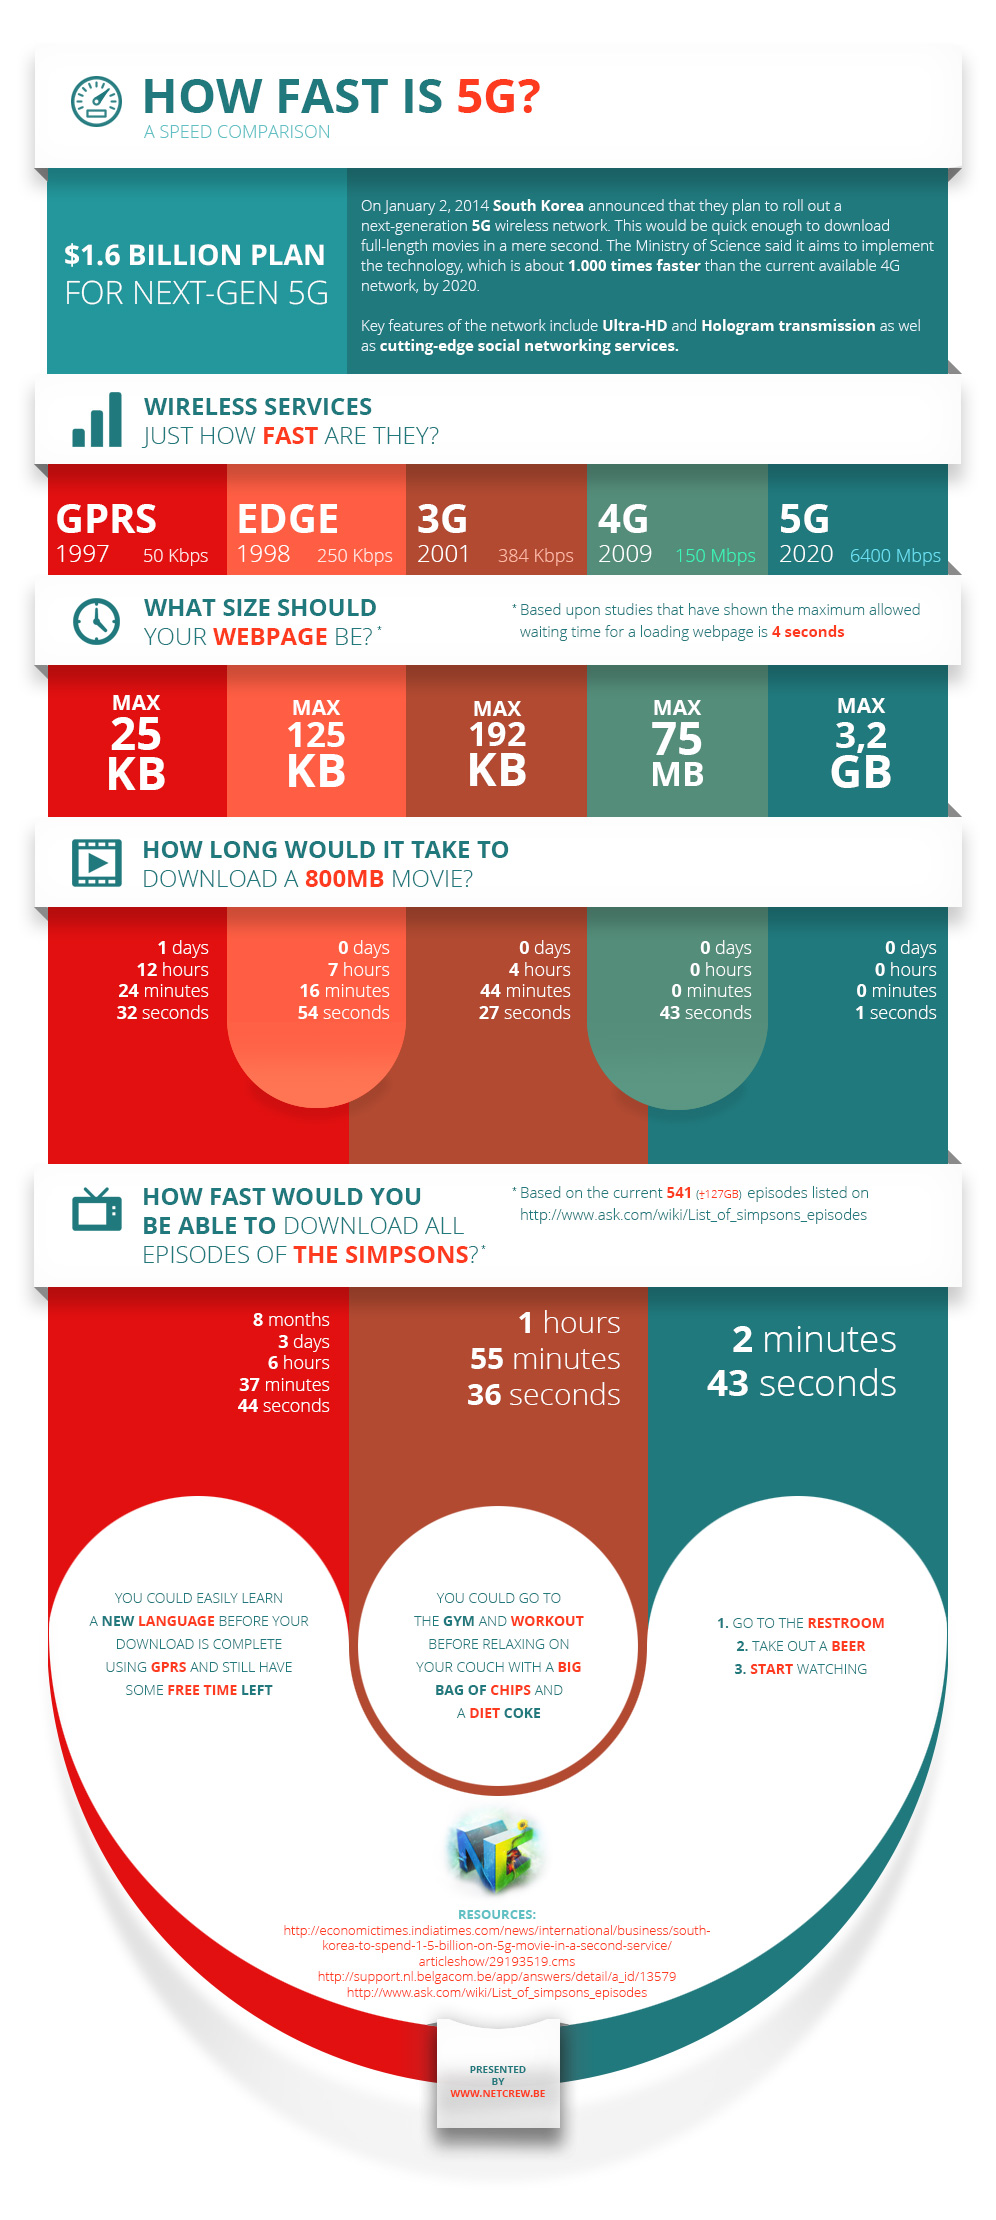 How Fast Is 5G A Speed Comparison [Infographic]